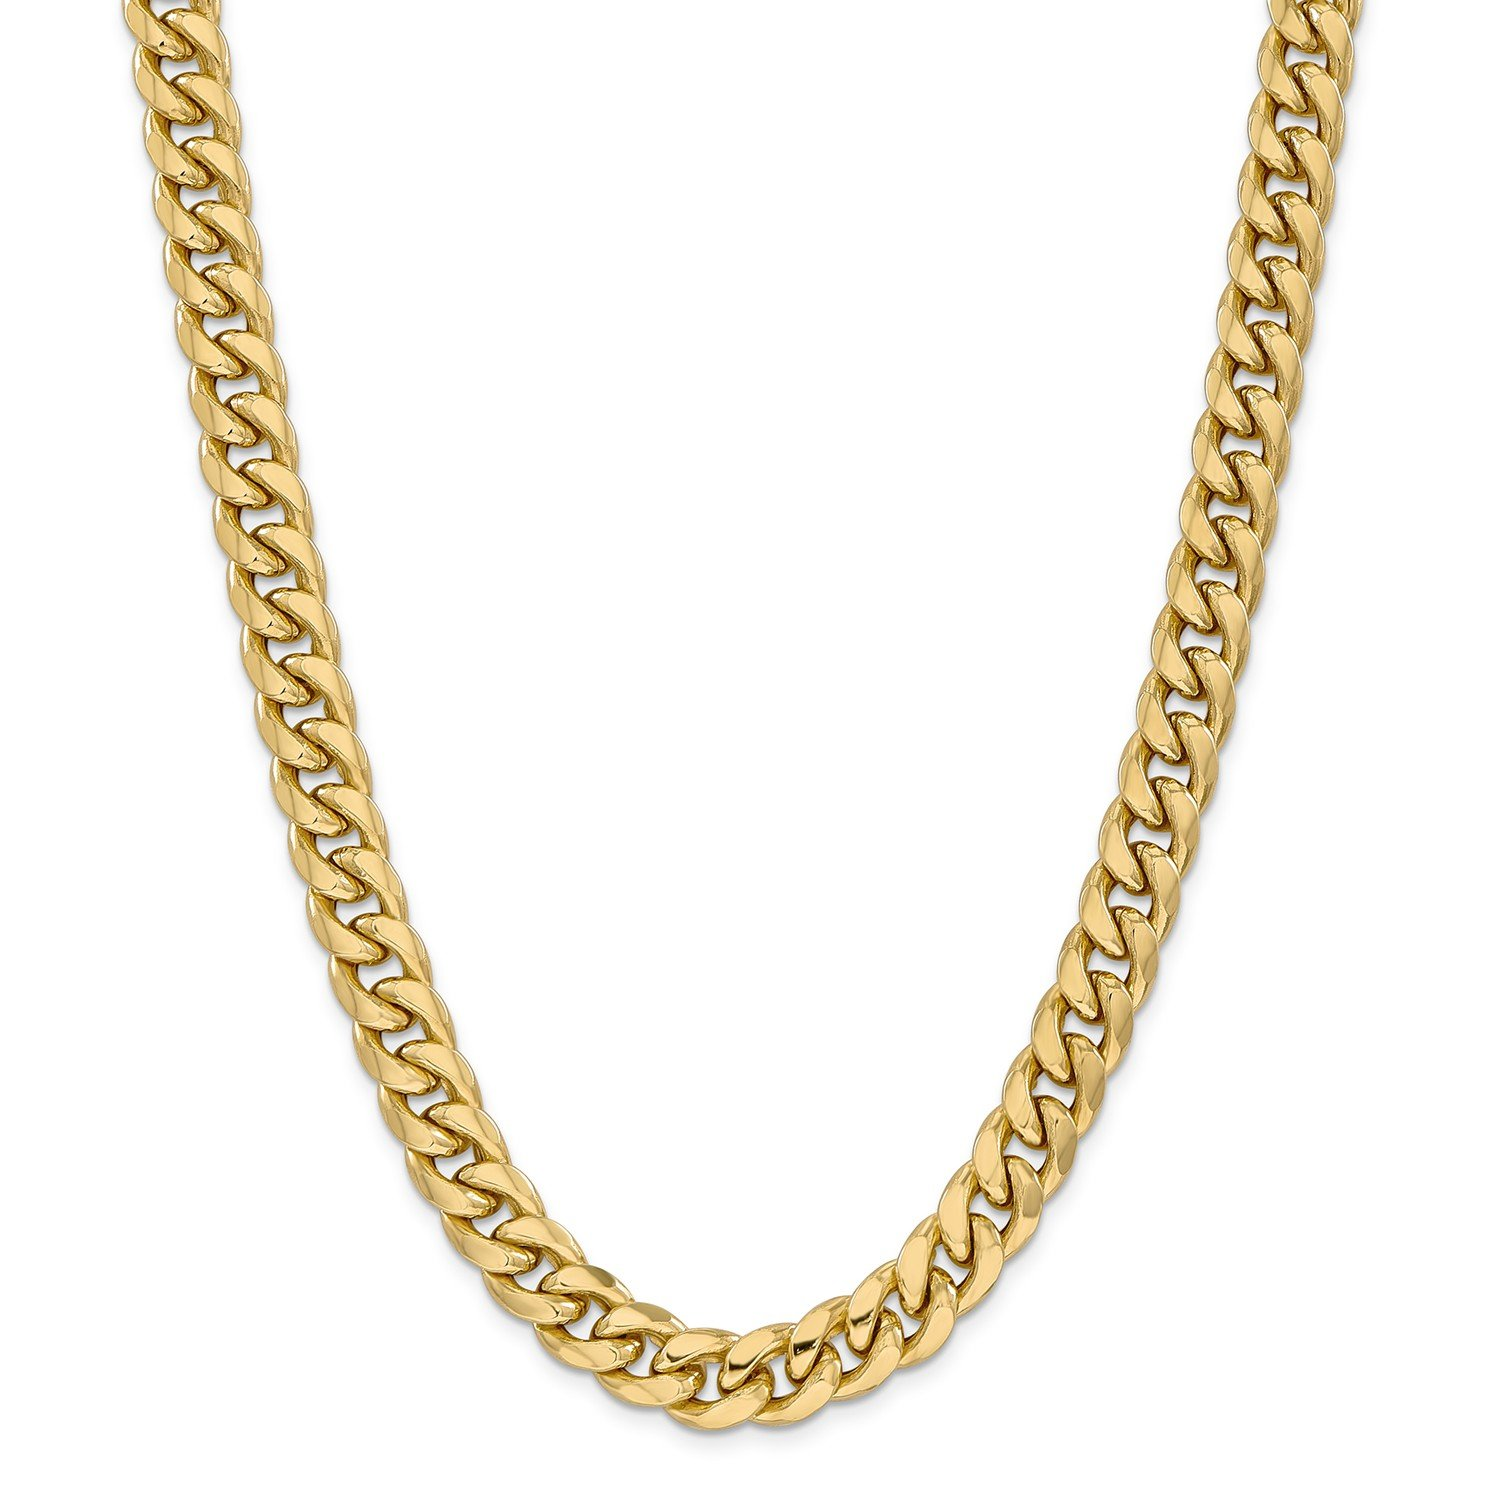 Roy Rose Jewelry 14K Yellow Gold Hollow Miami Cuban Chain Necklace ~ Length 24'' inches